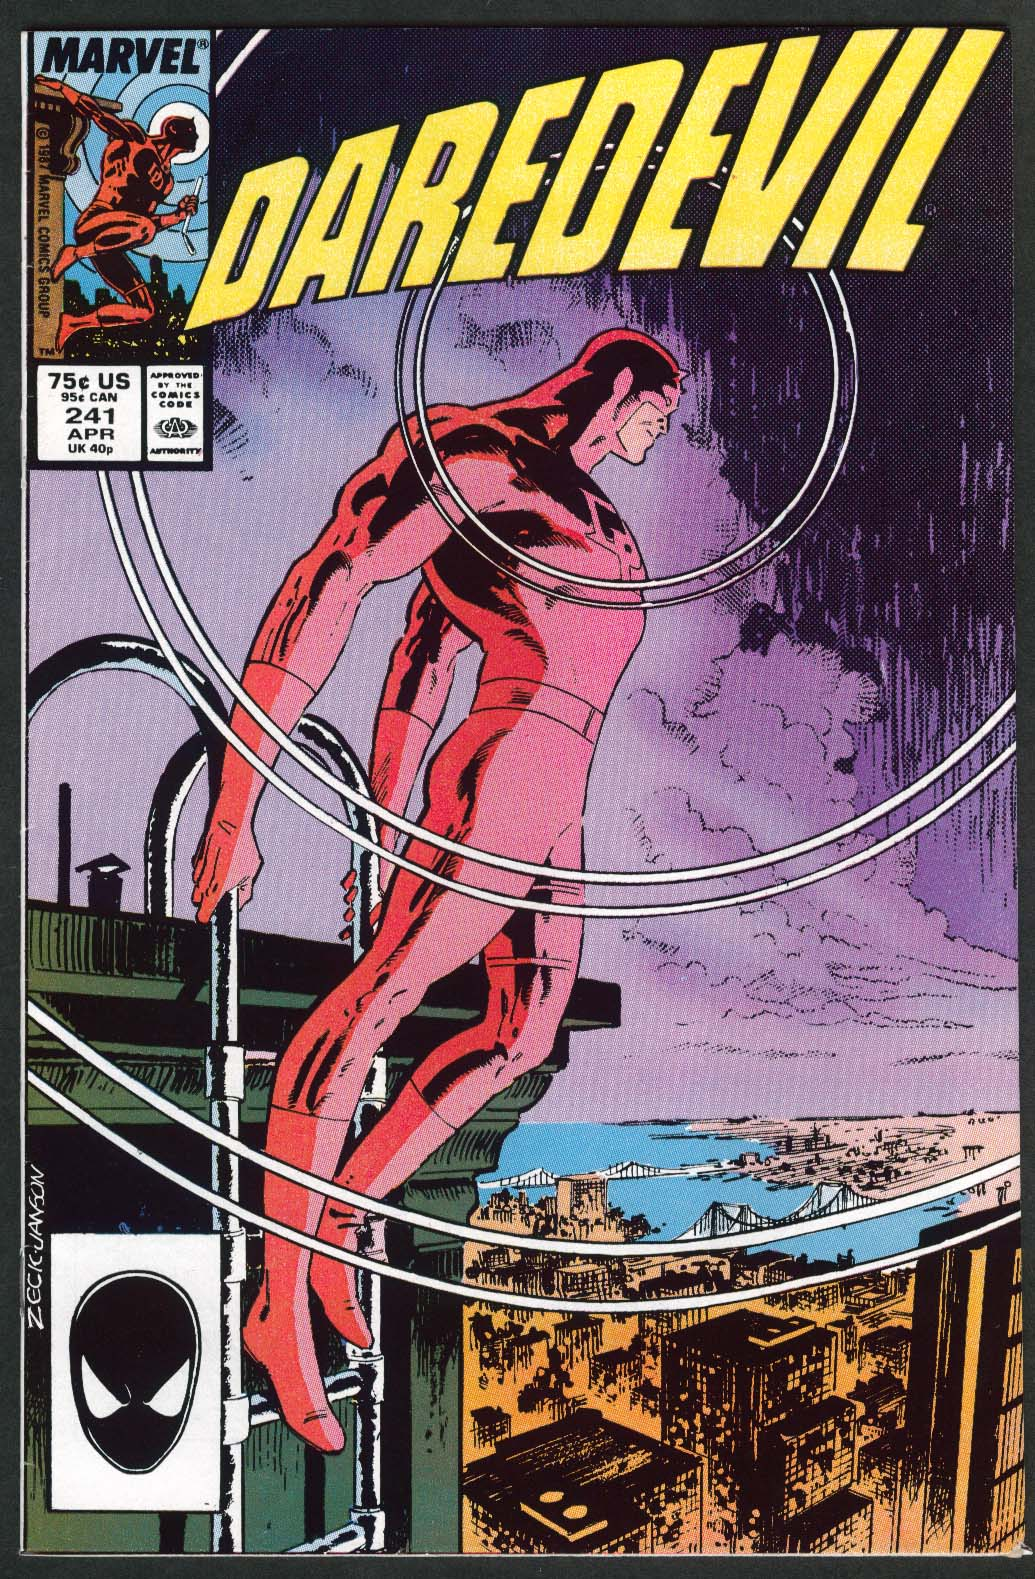 DAREDEVIL #241 Marvel comic book 4 1987 M&M's; Dungeons & Dragons ads